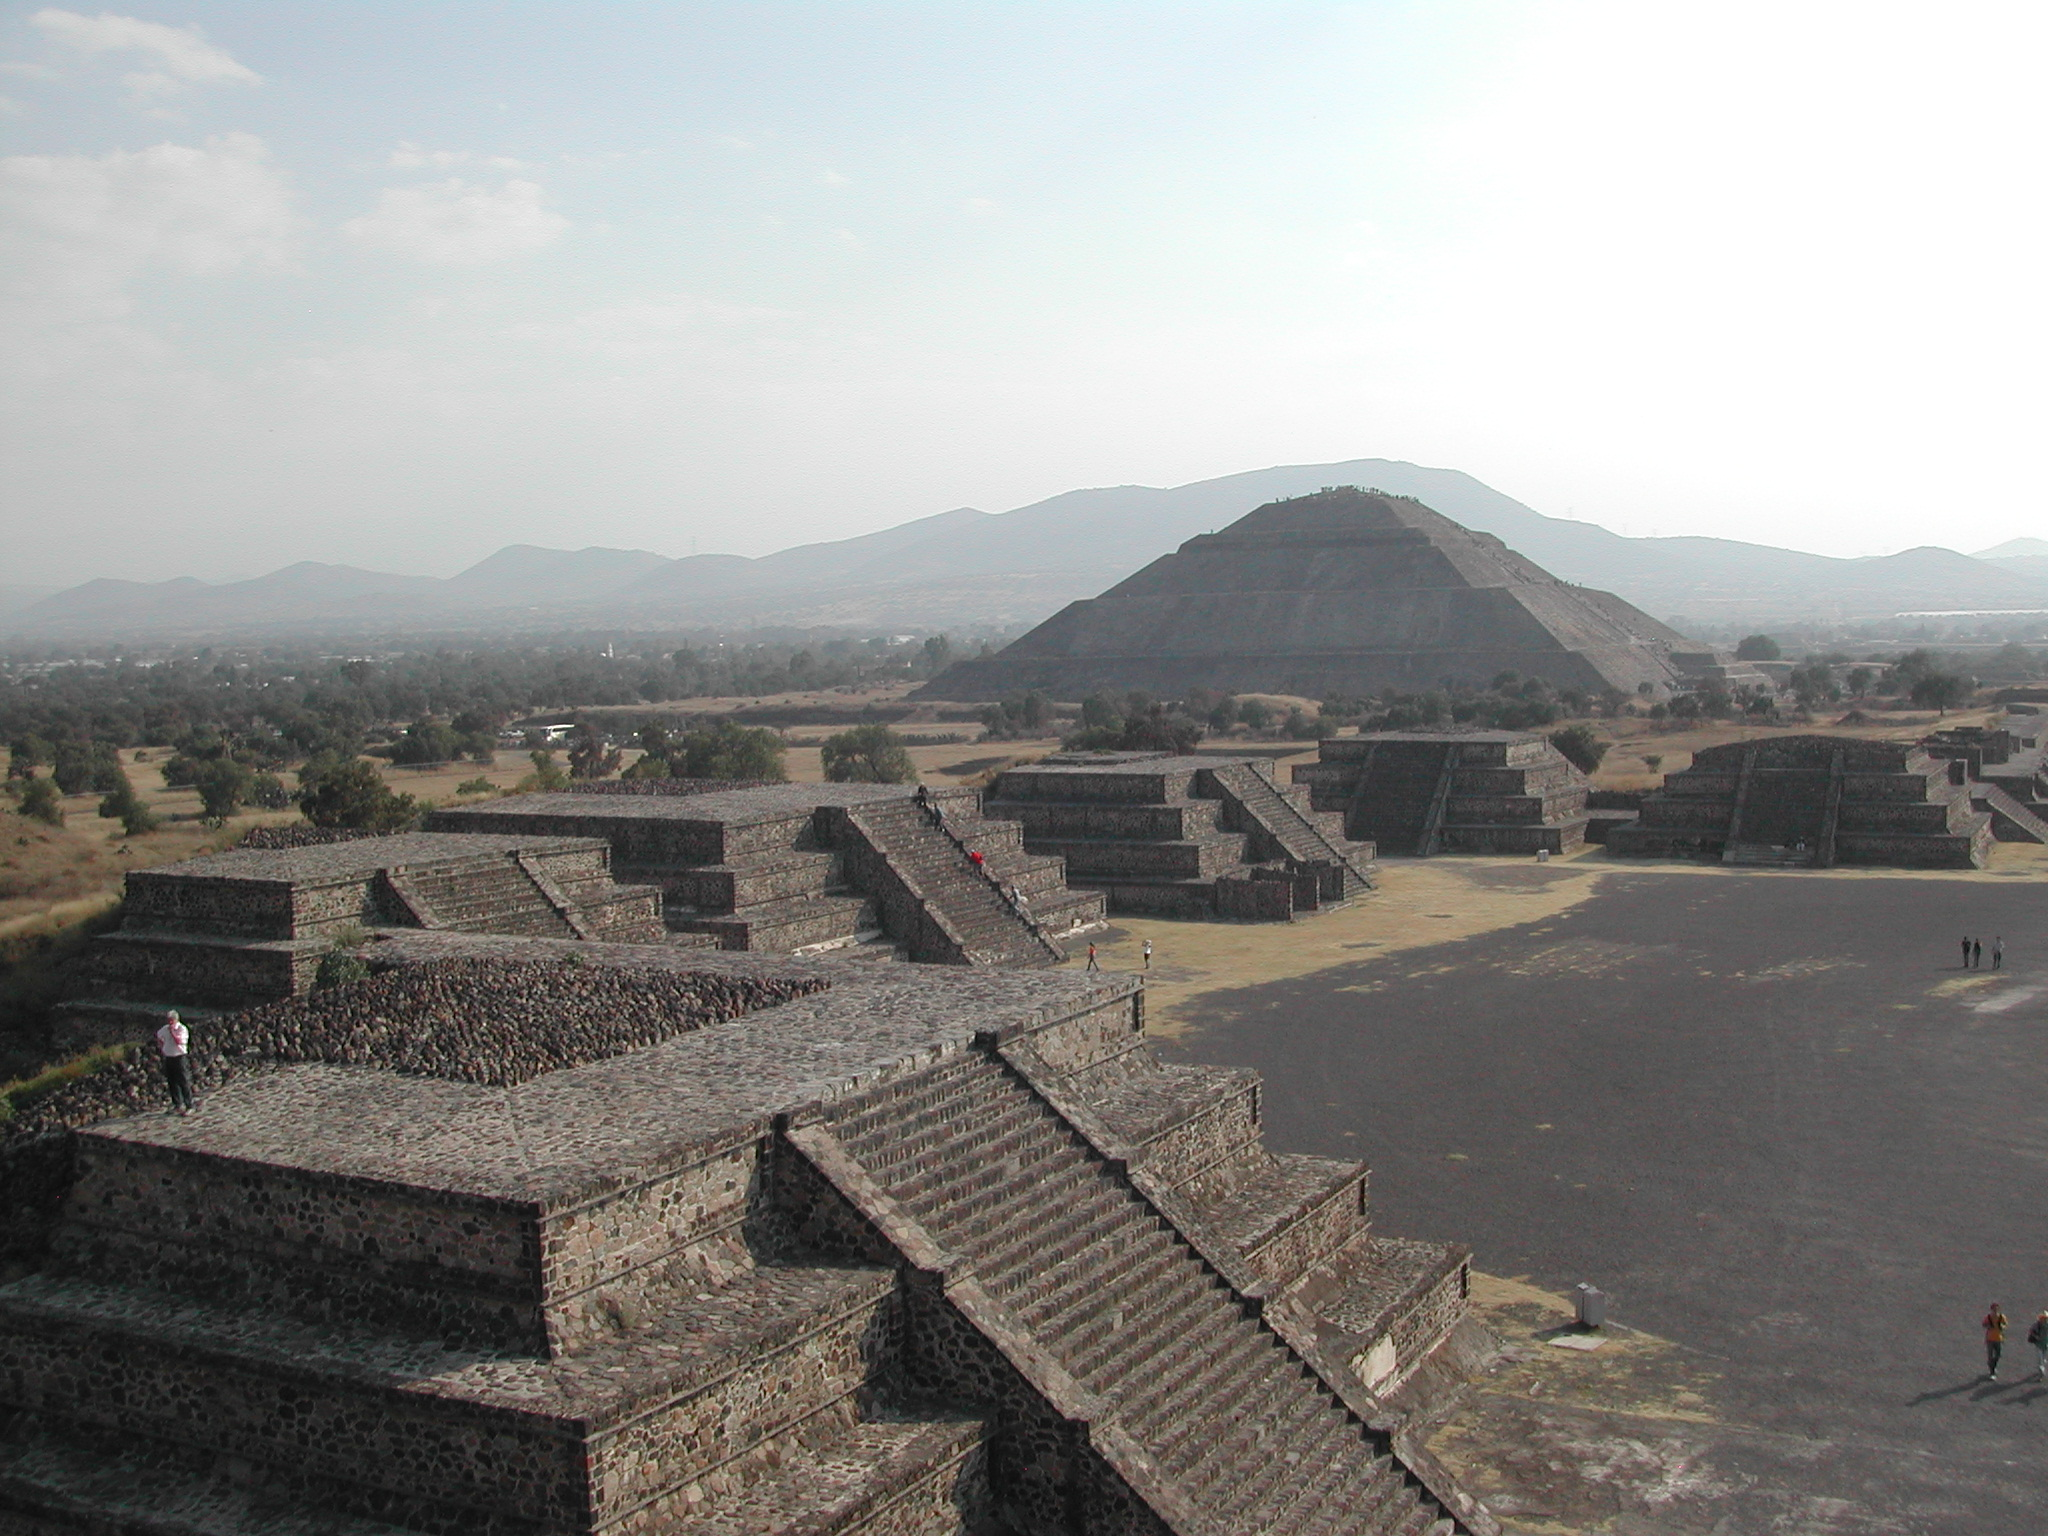 Teotihuacan by Flikr user Laura Rush